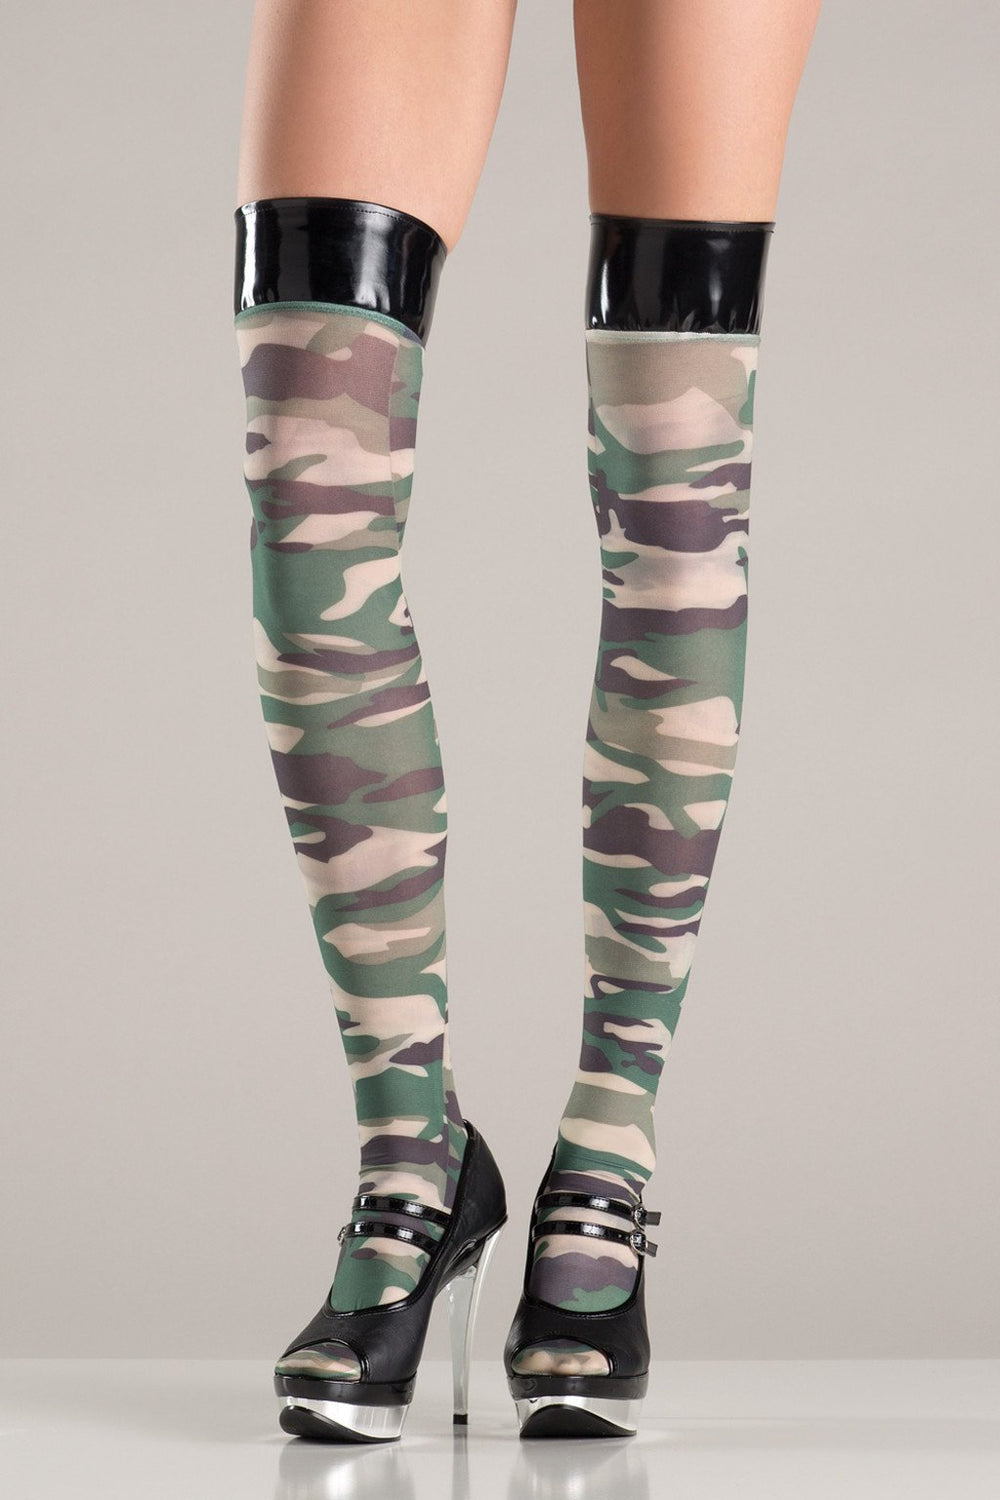 BW750 Camo Thigh Highs